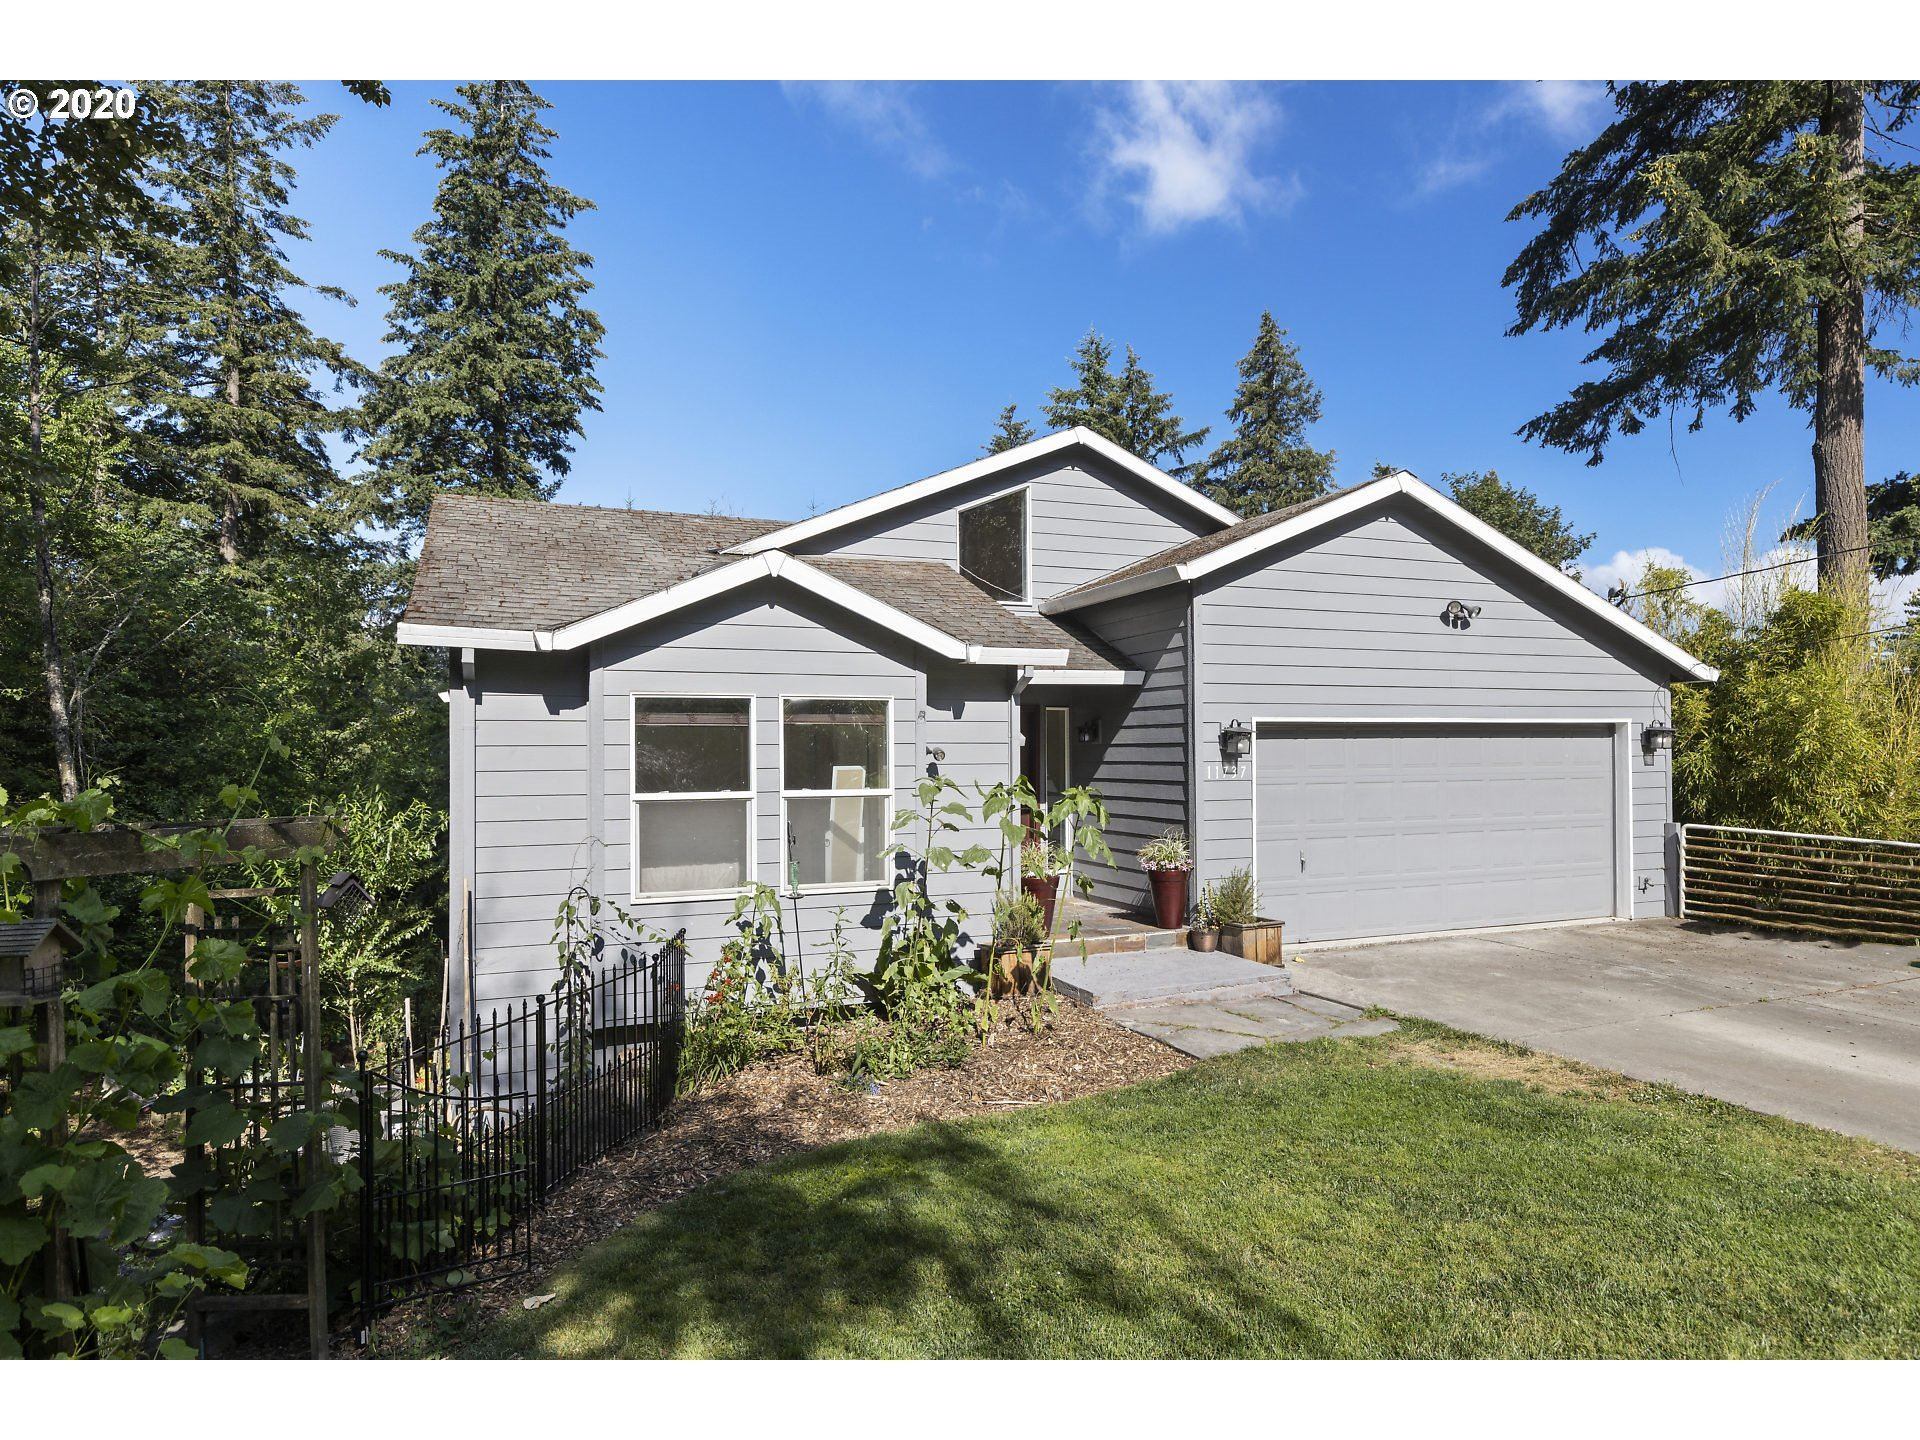 11737 SW 47TH AVE, Portland, OR 97219 - MLS#: 20419616